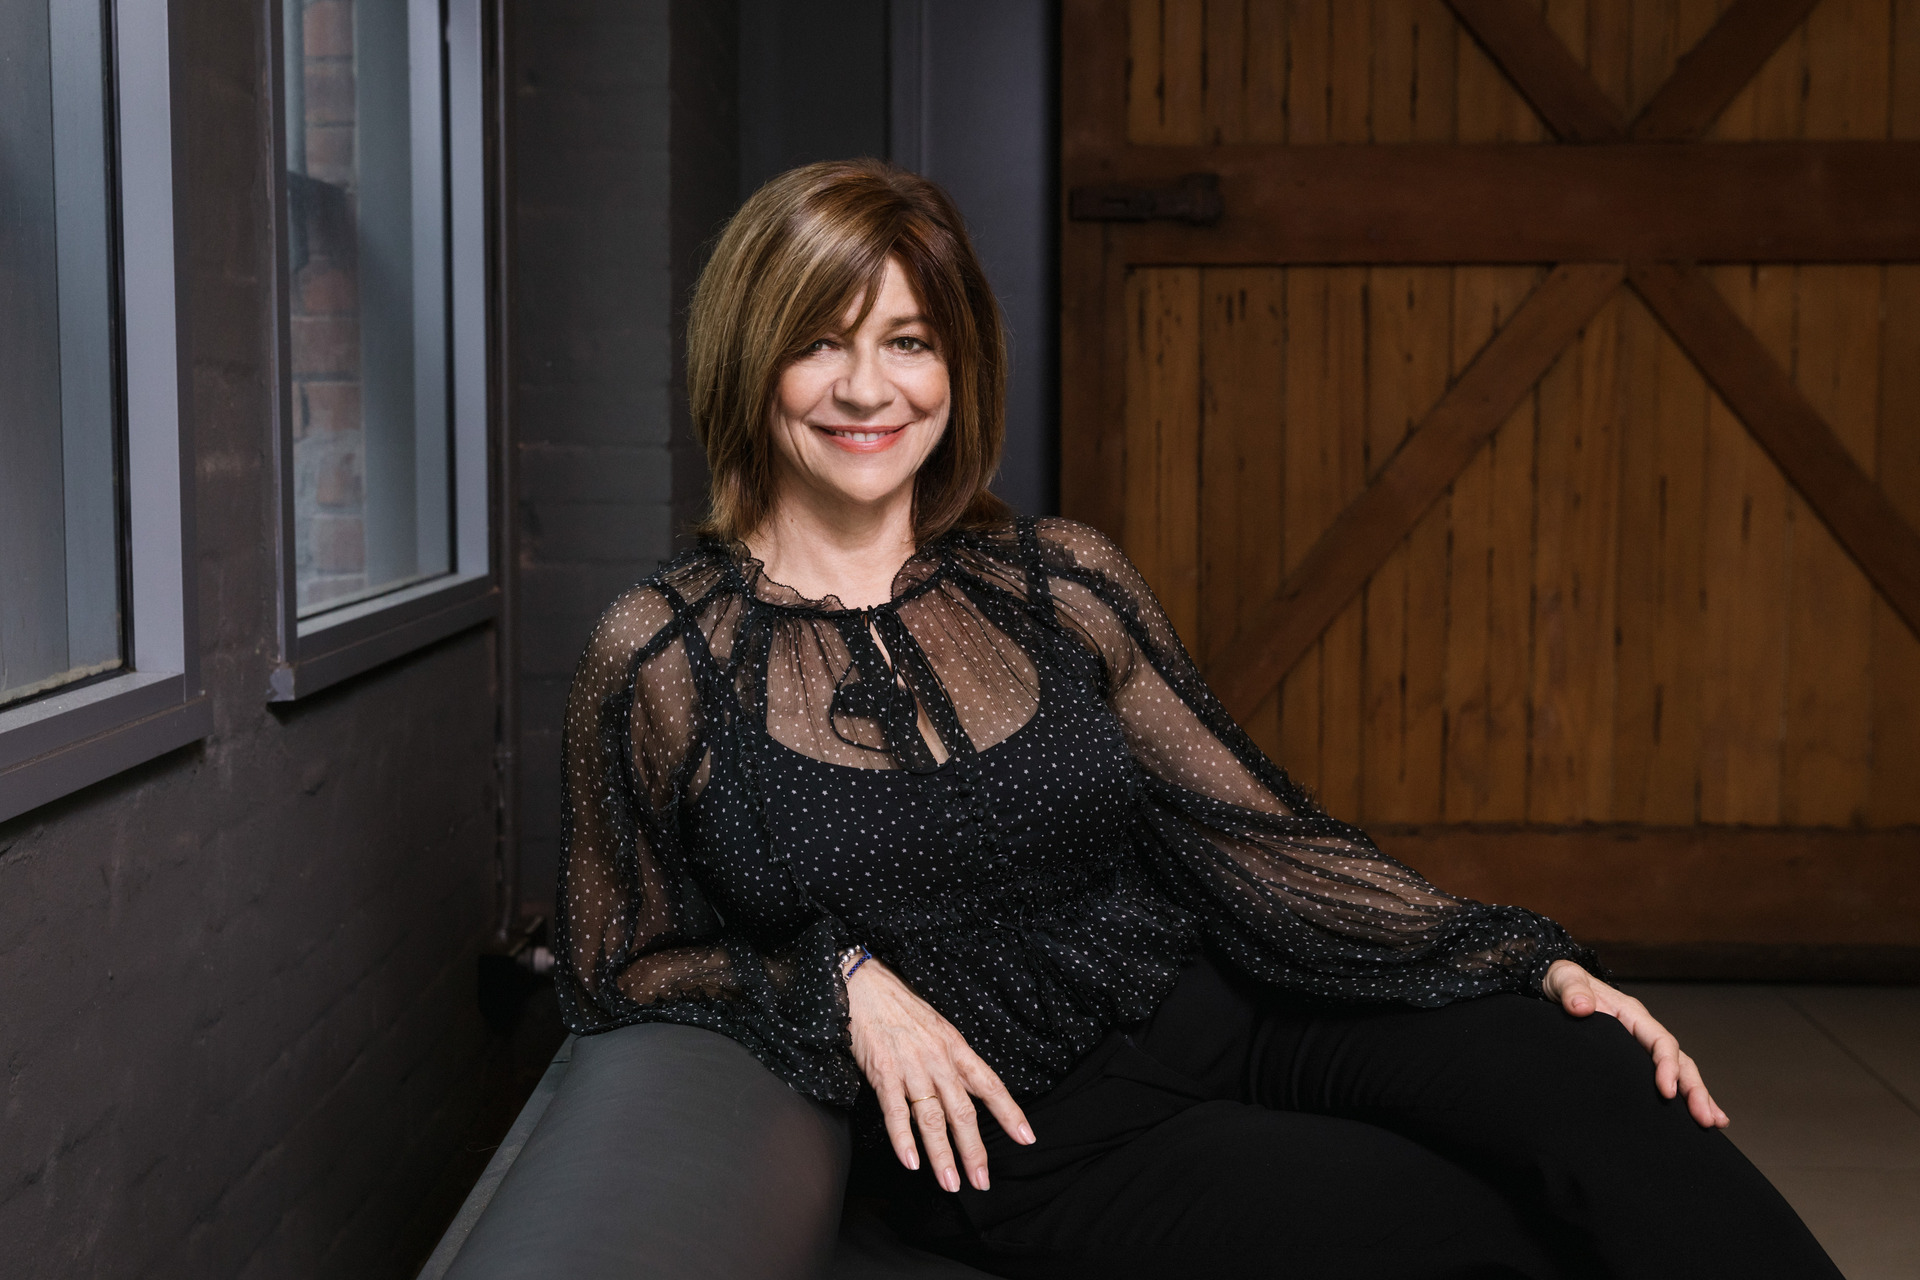 Why Kiwi hitmaker Jenny Morris can't sing anymore - NZ Herald